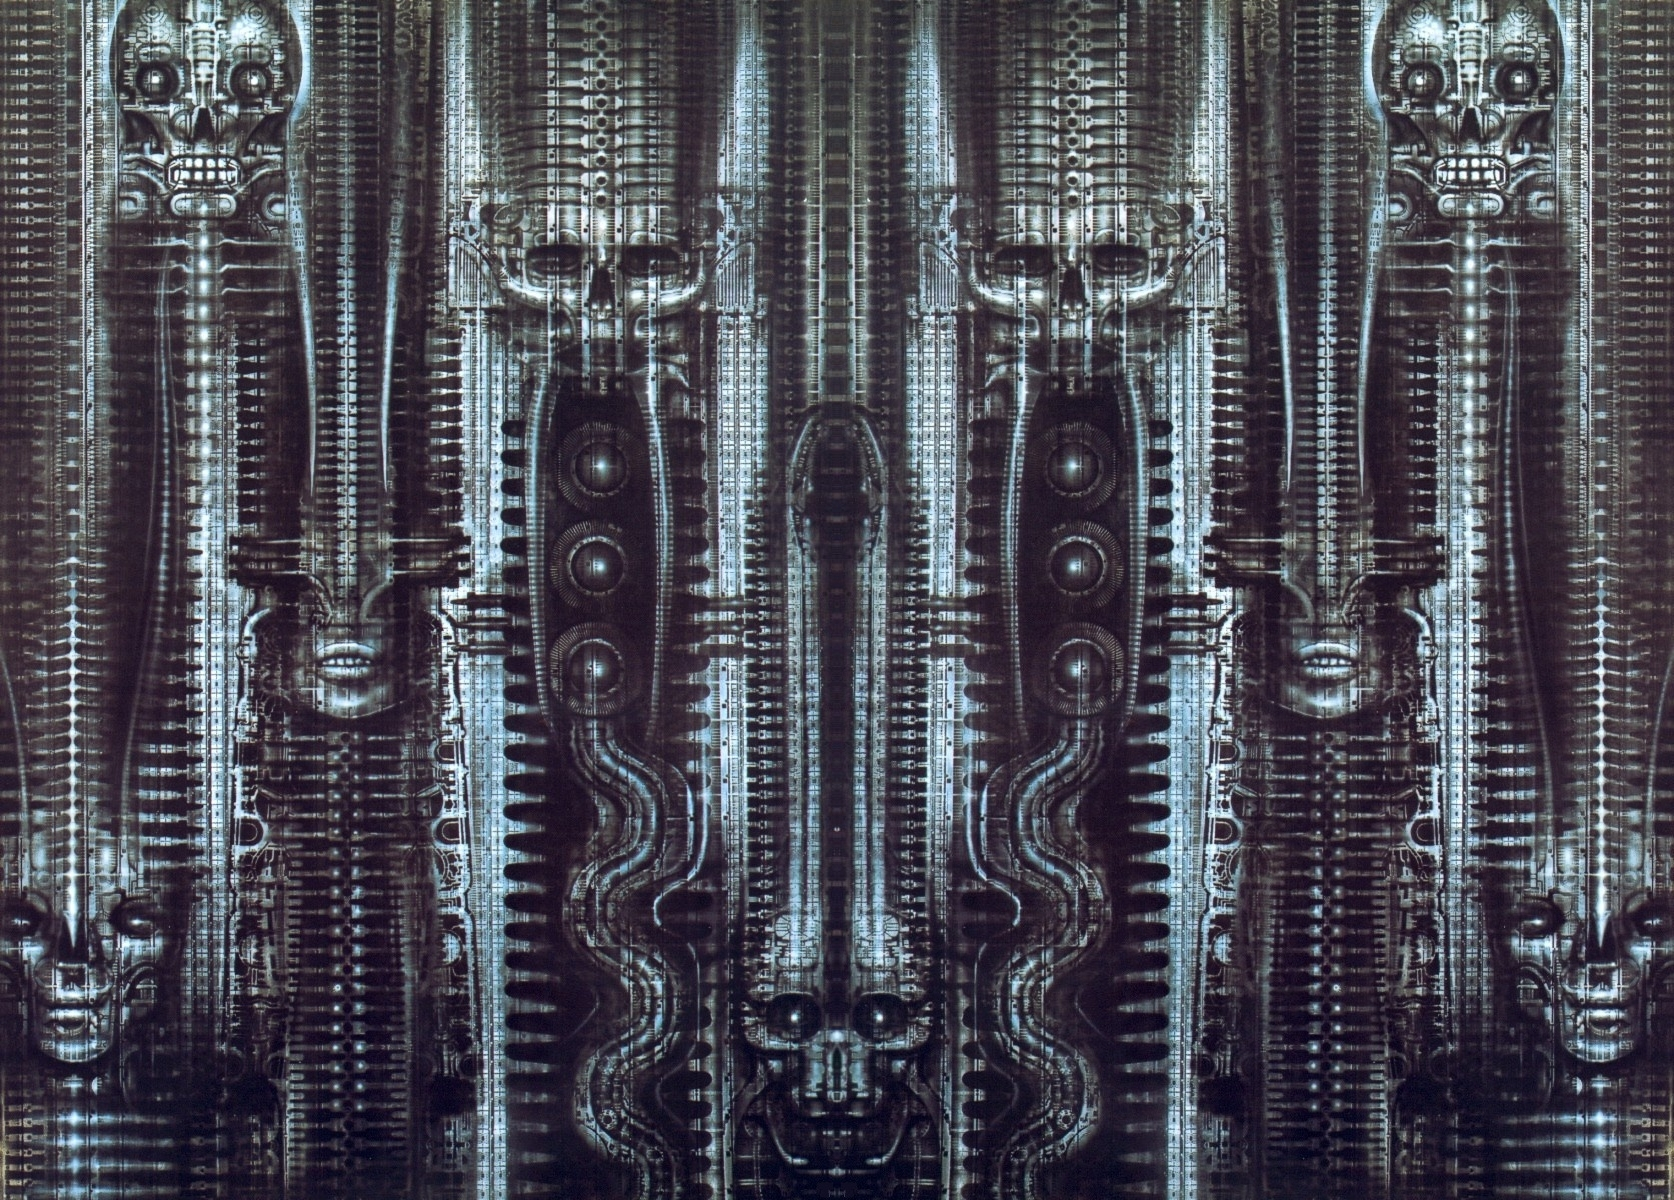 hr_giger_newyorkcity_XI_exotic-corrected